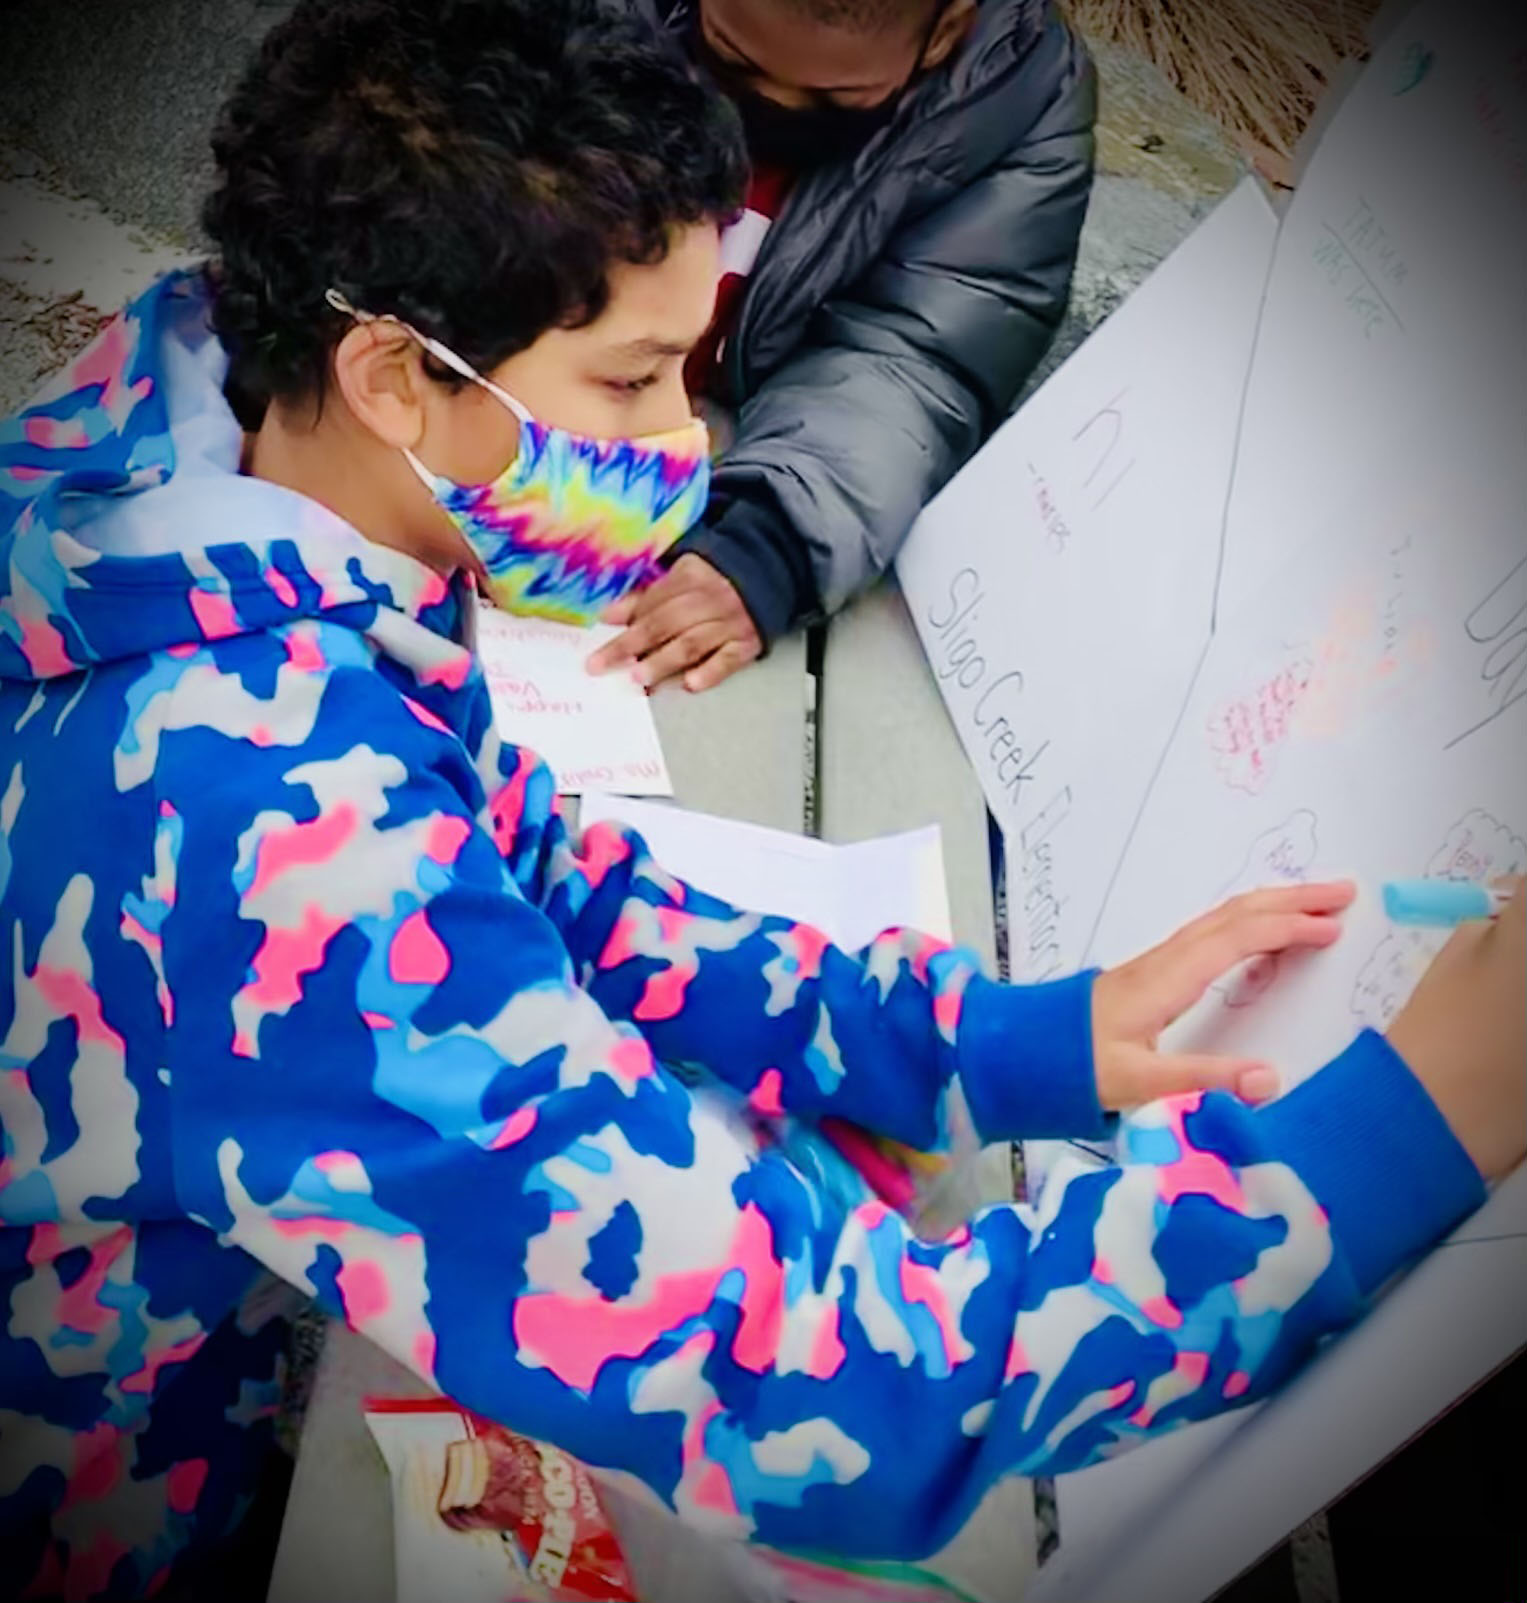 Young boy in colorful jacket and mask signs a Valentine's Day card for his teacher